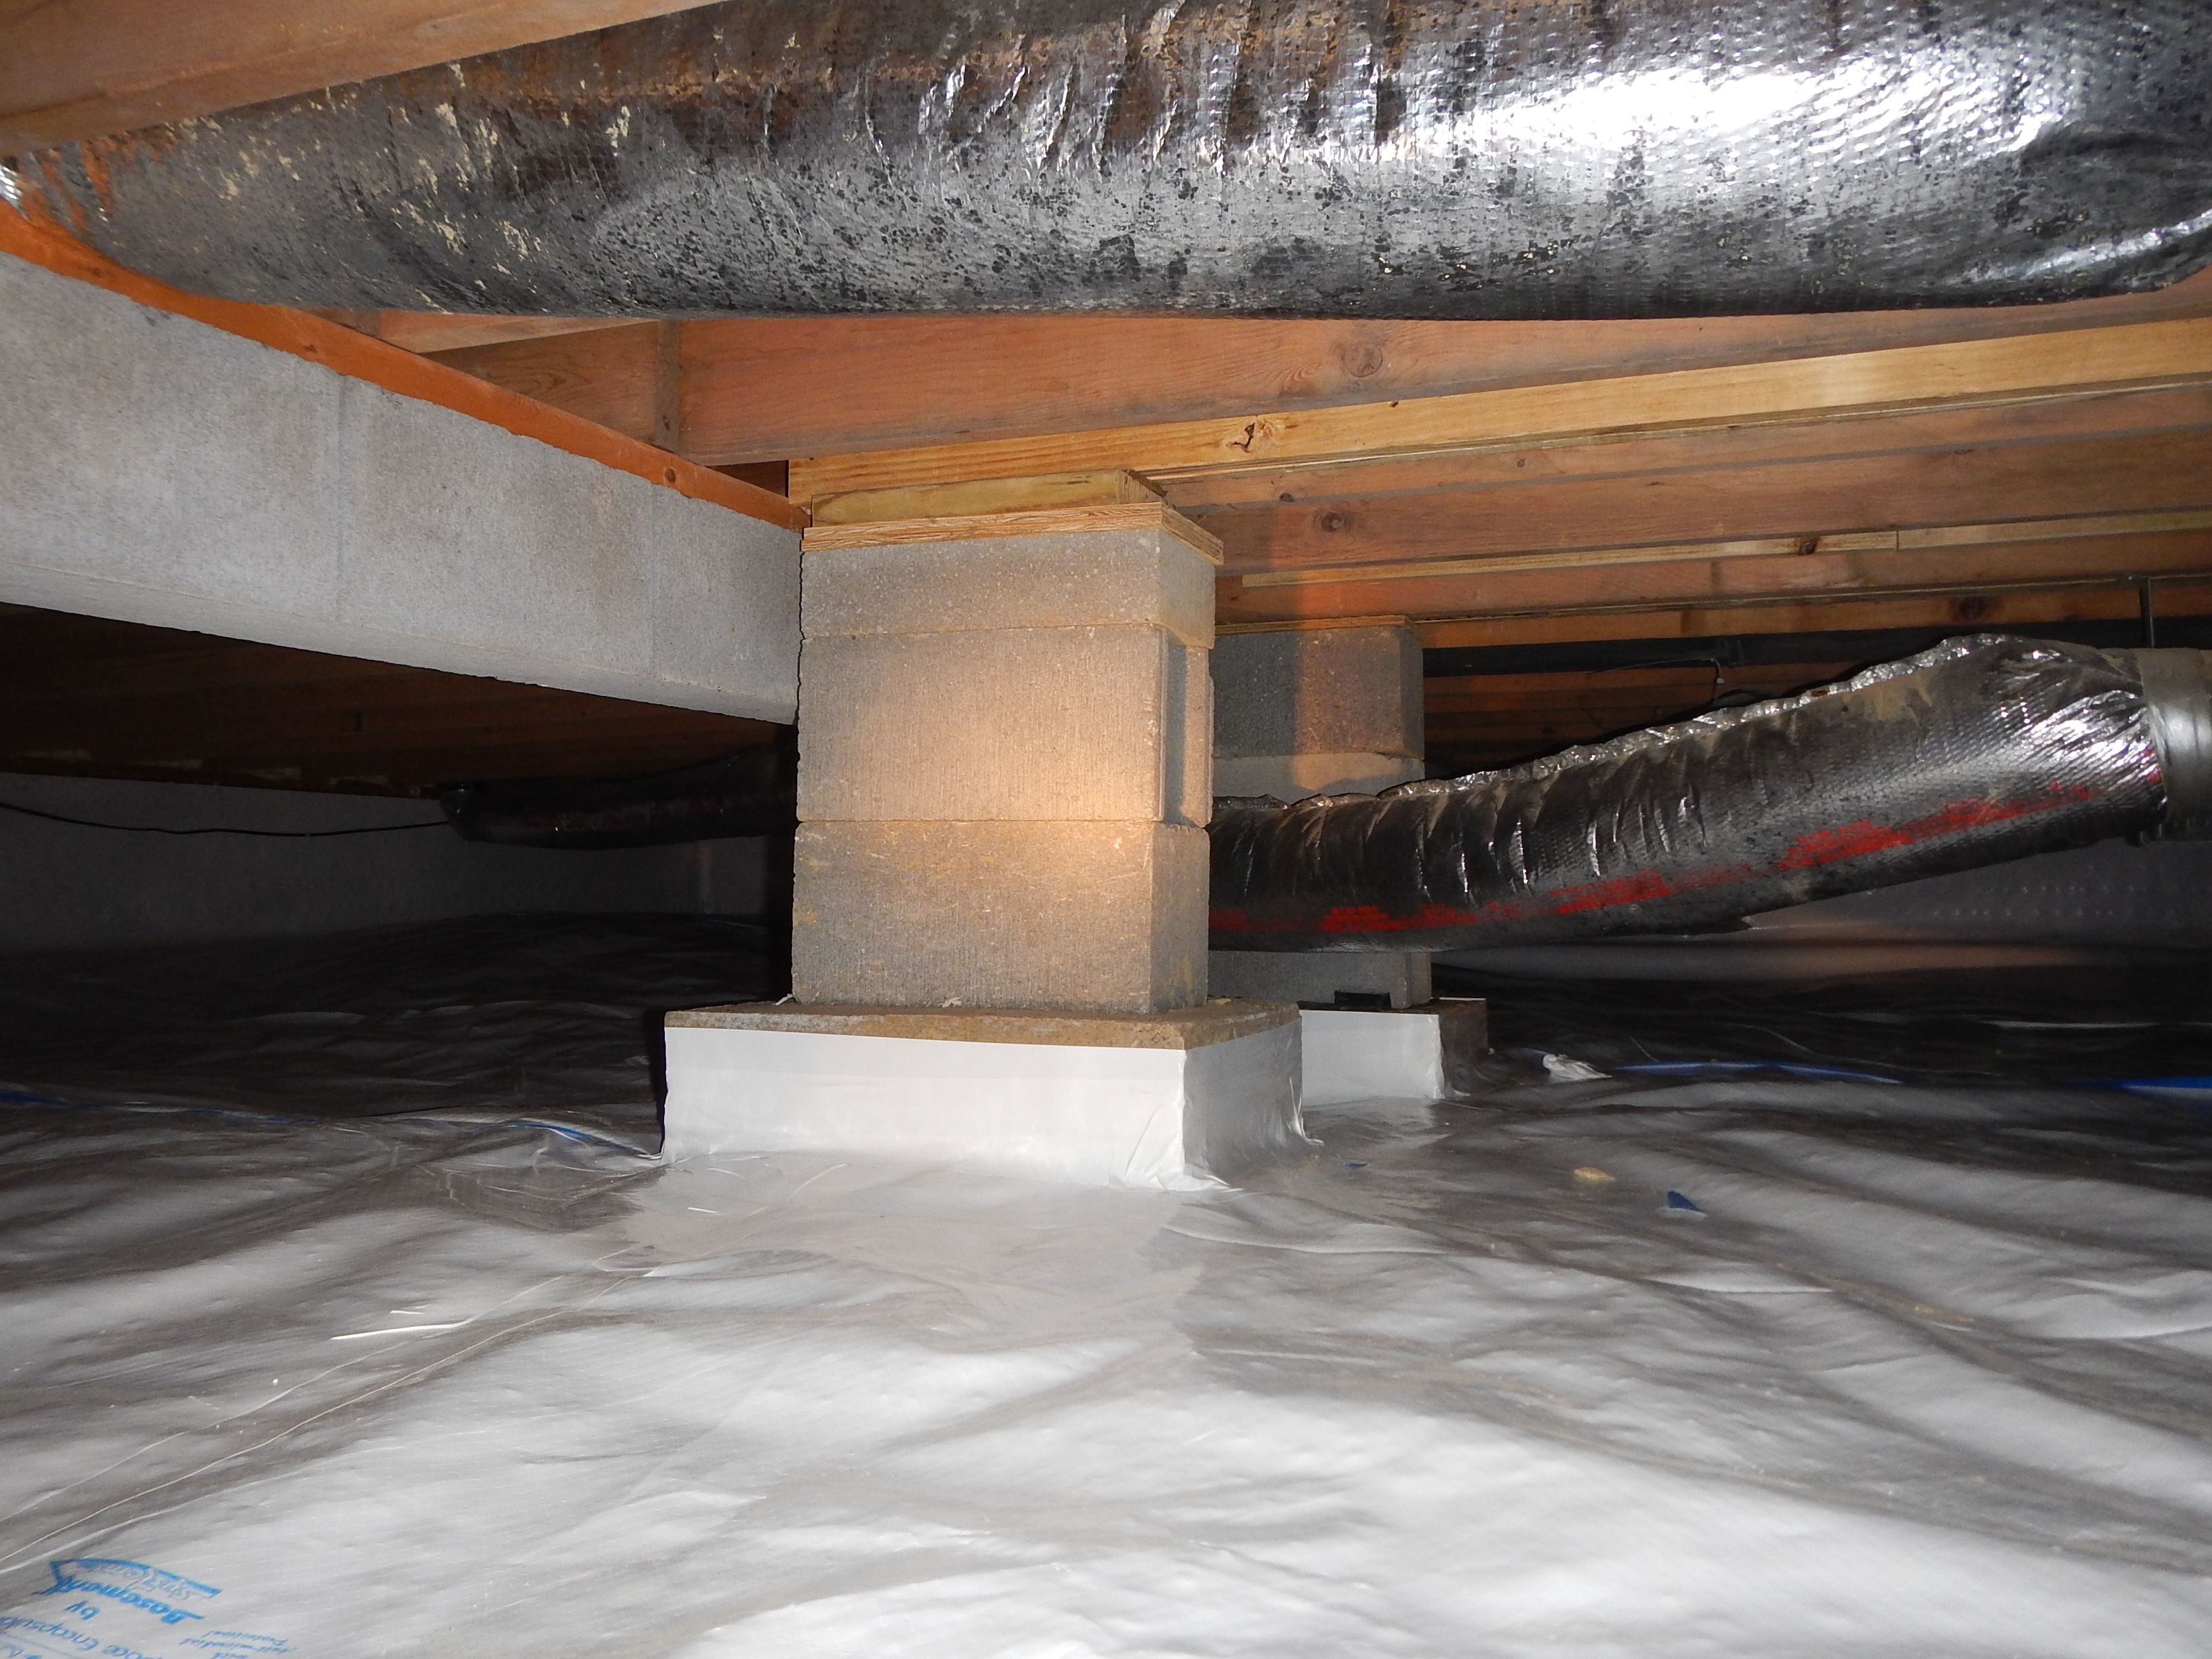 Crawle Block Piers Added To A Beam Between The Floor Joists That Is Preventing